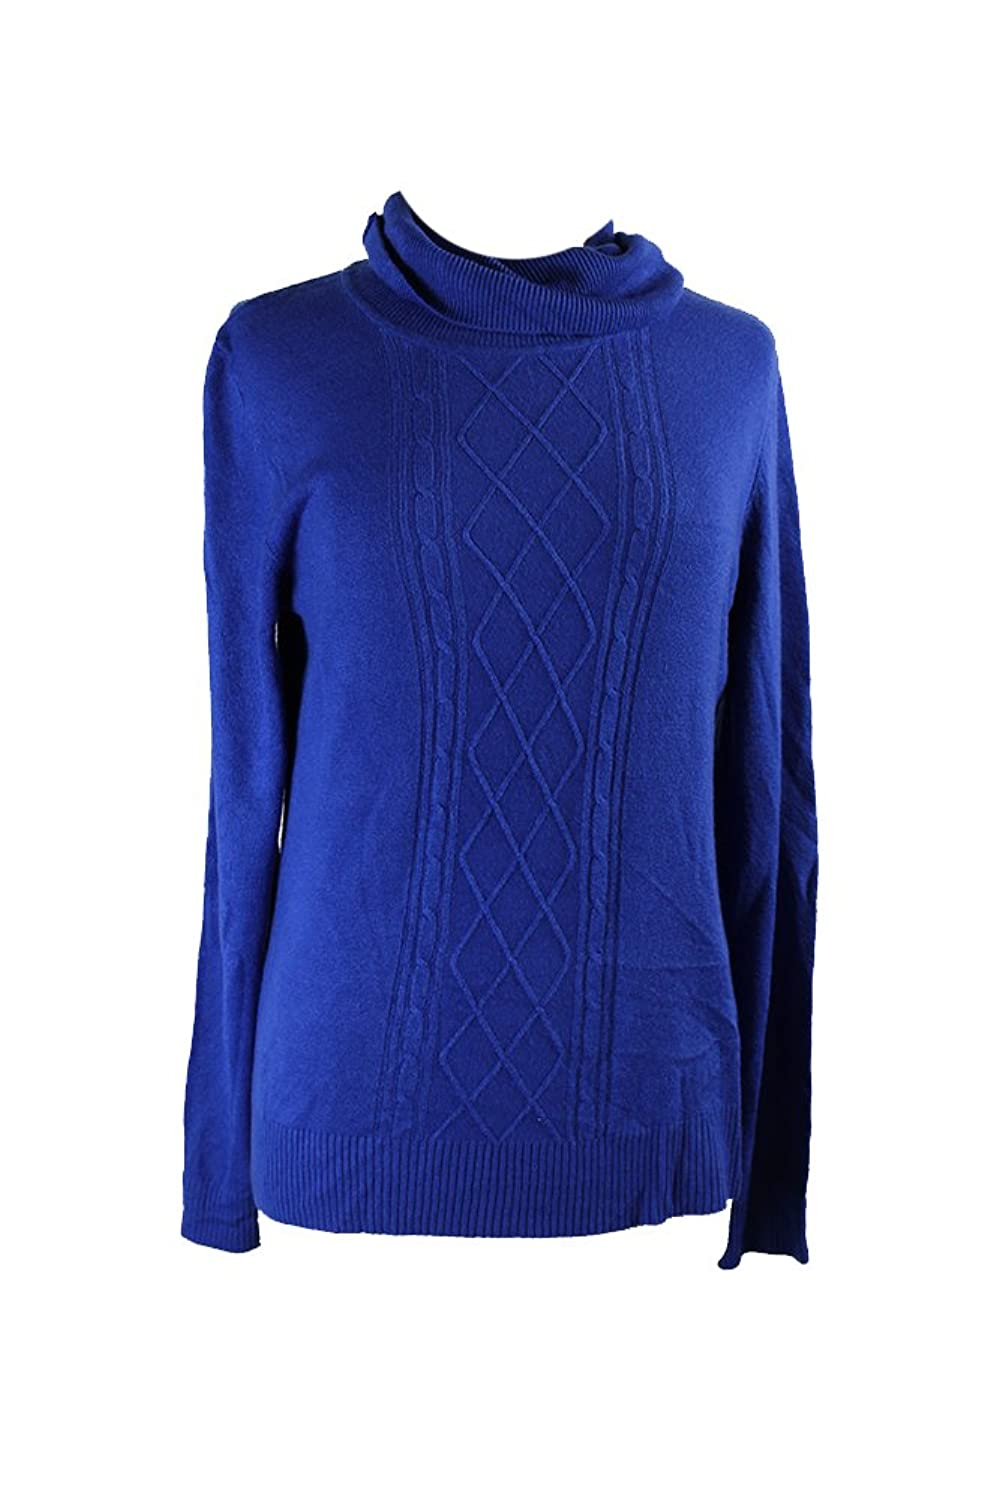 Karen Scott Royal Long-Sleeve Mock Turtleneck Sweater L